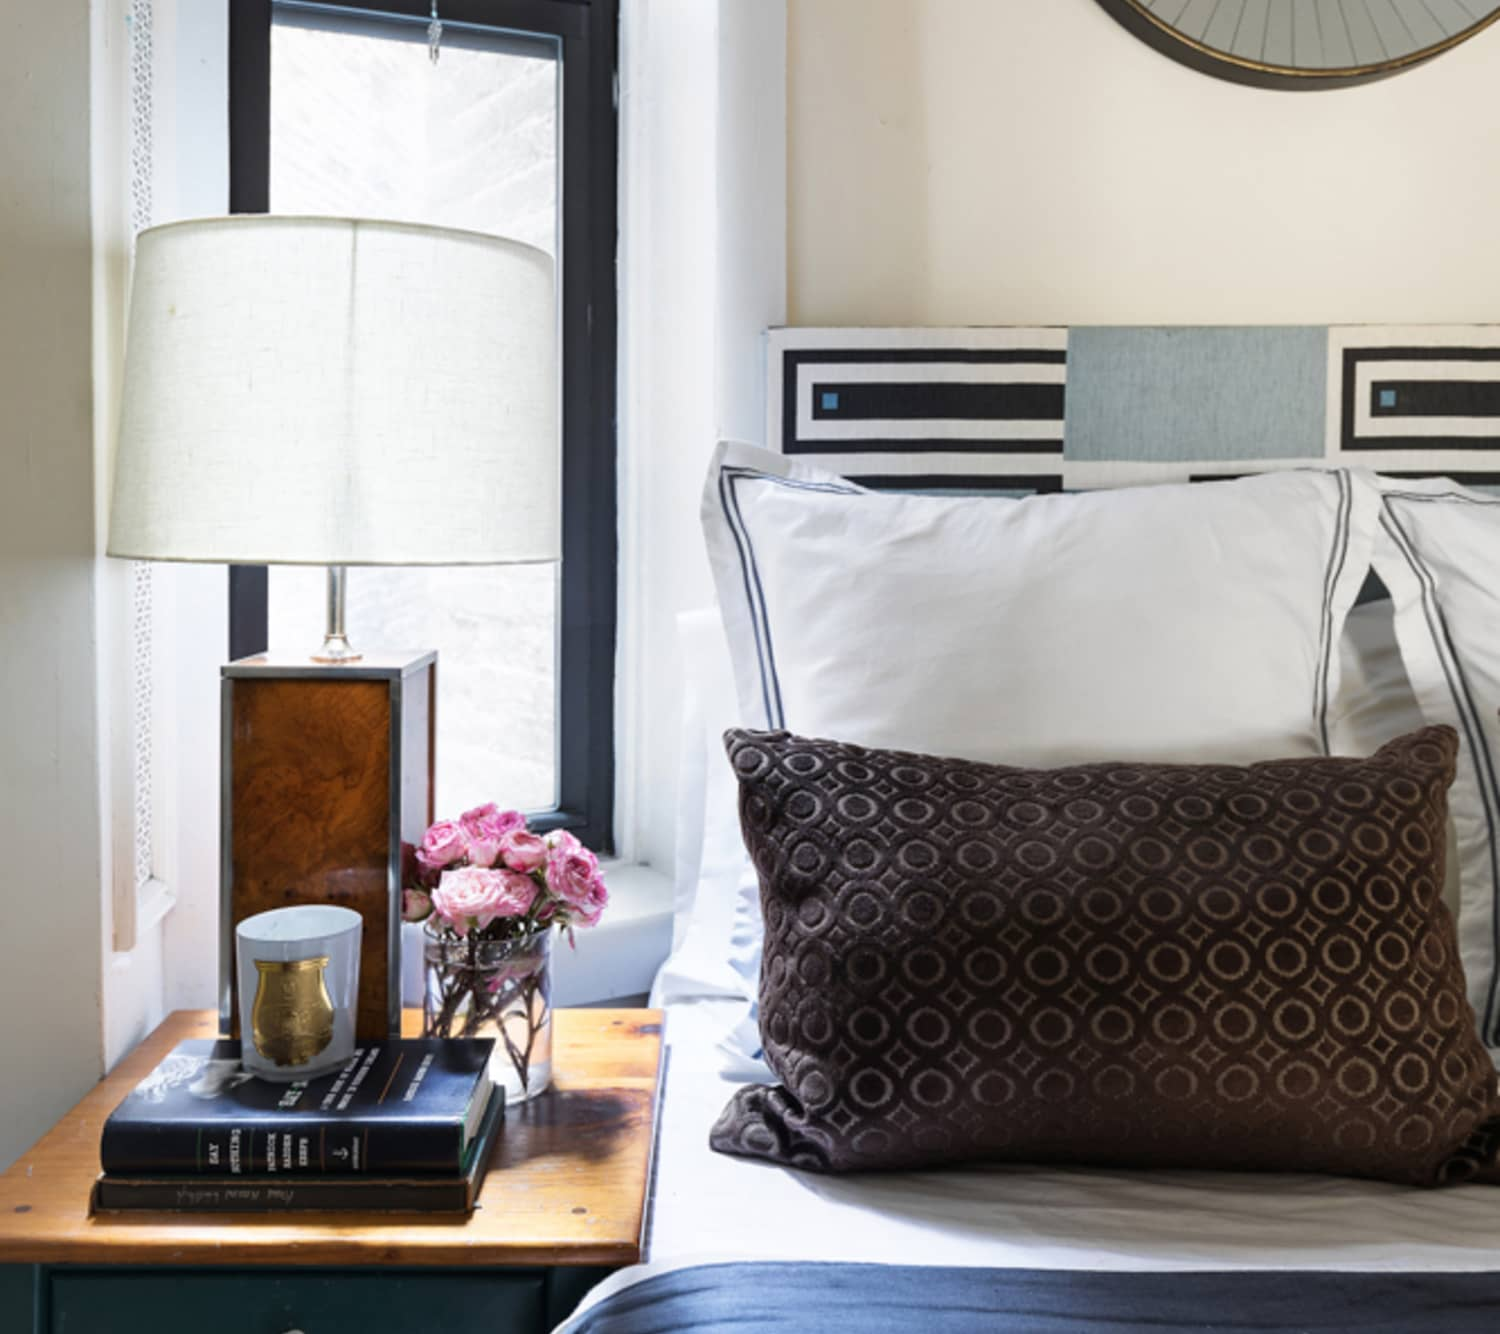 A 380-Square -Foot NYC Rental Is Stuffed With Smart and Stylish Decor Tricks and Solutions